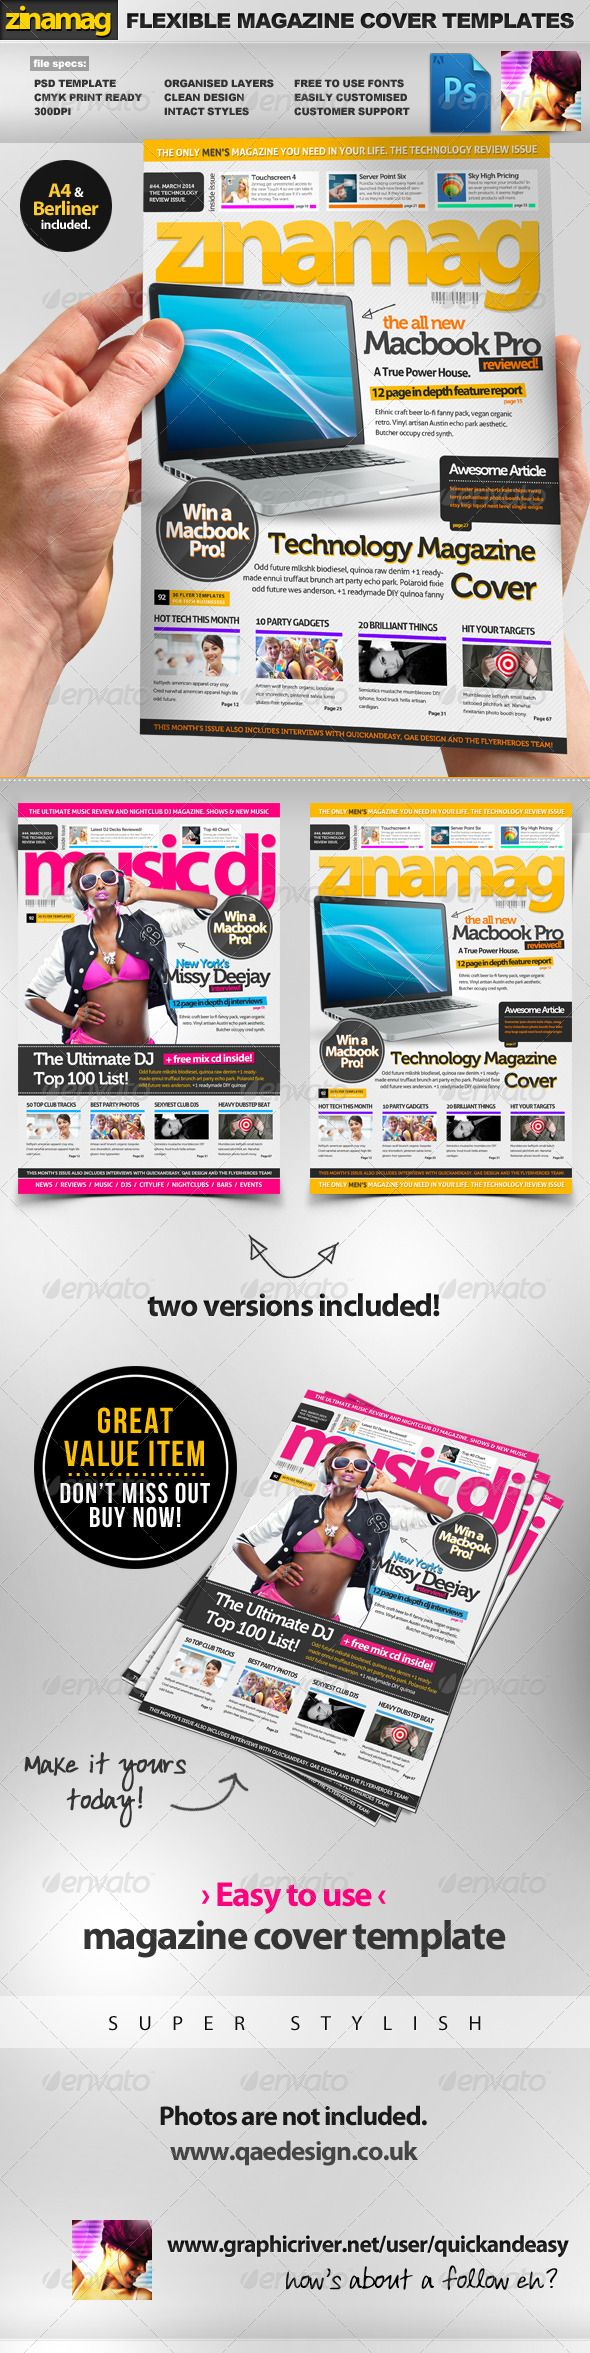 ZinaMag A4 / Berliner PSD Magazine Cover Templates — Photoshop PSD #basic #pink • Available here → https://graphicriver.net/item/zinamag-a4-berliner-psd-magazine-cover-templates/1818427?ref=pxcr